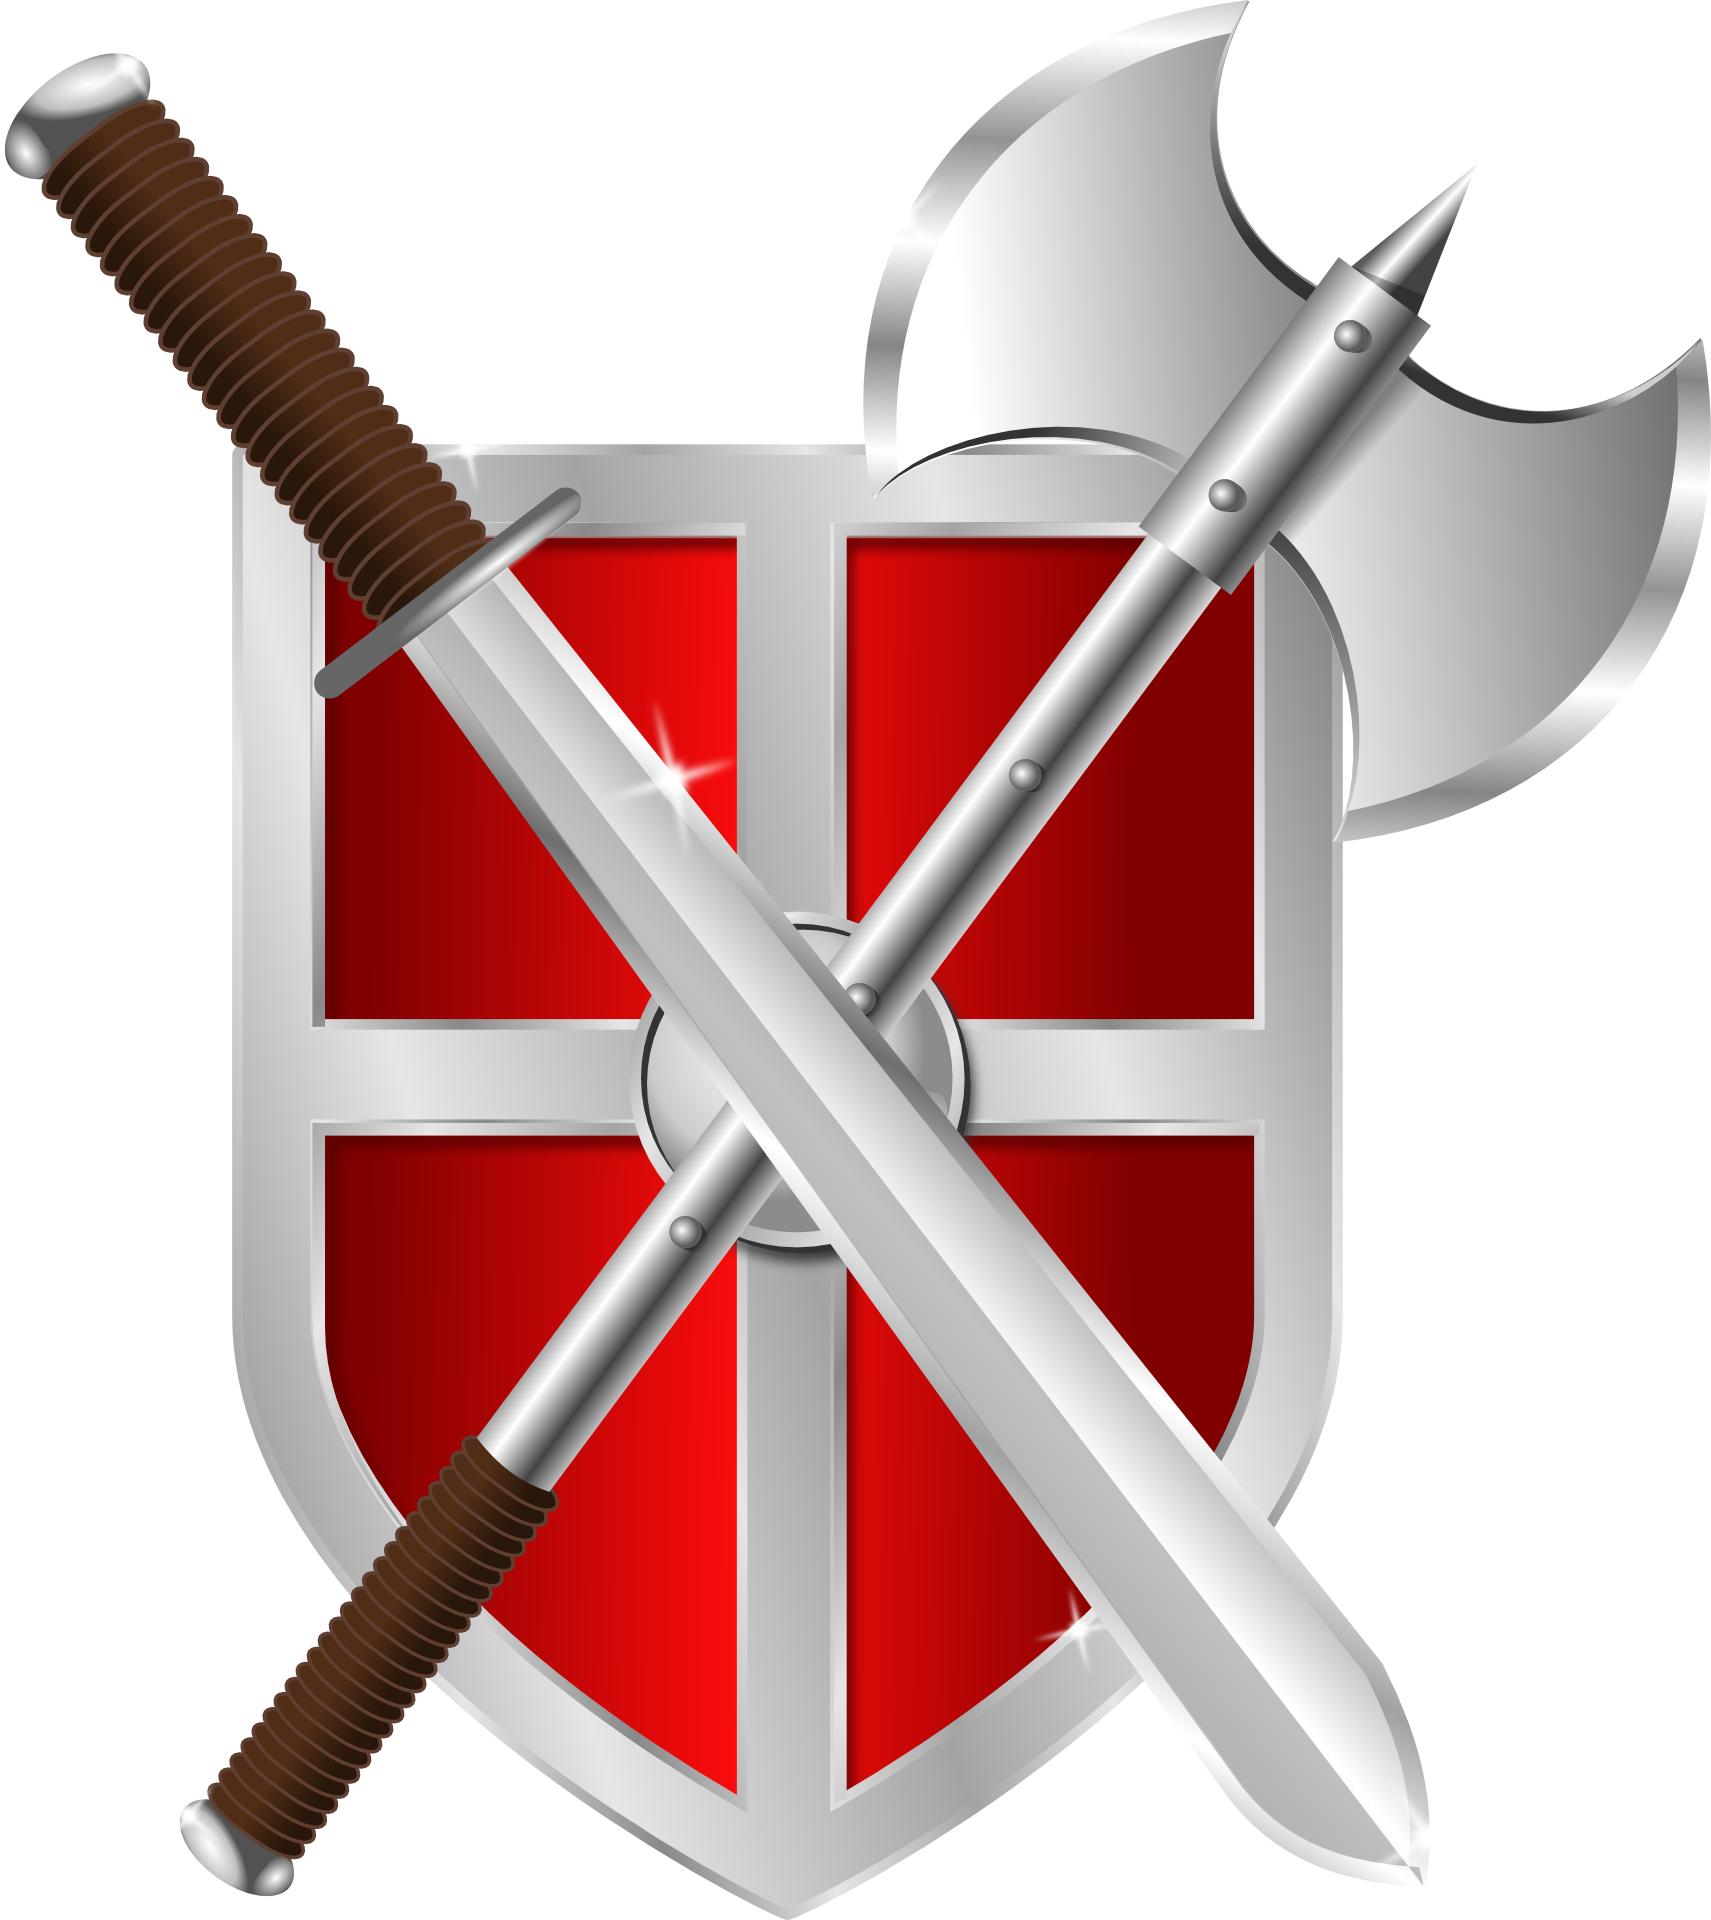 cartoon,shield, axe,sword vector